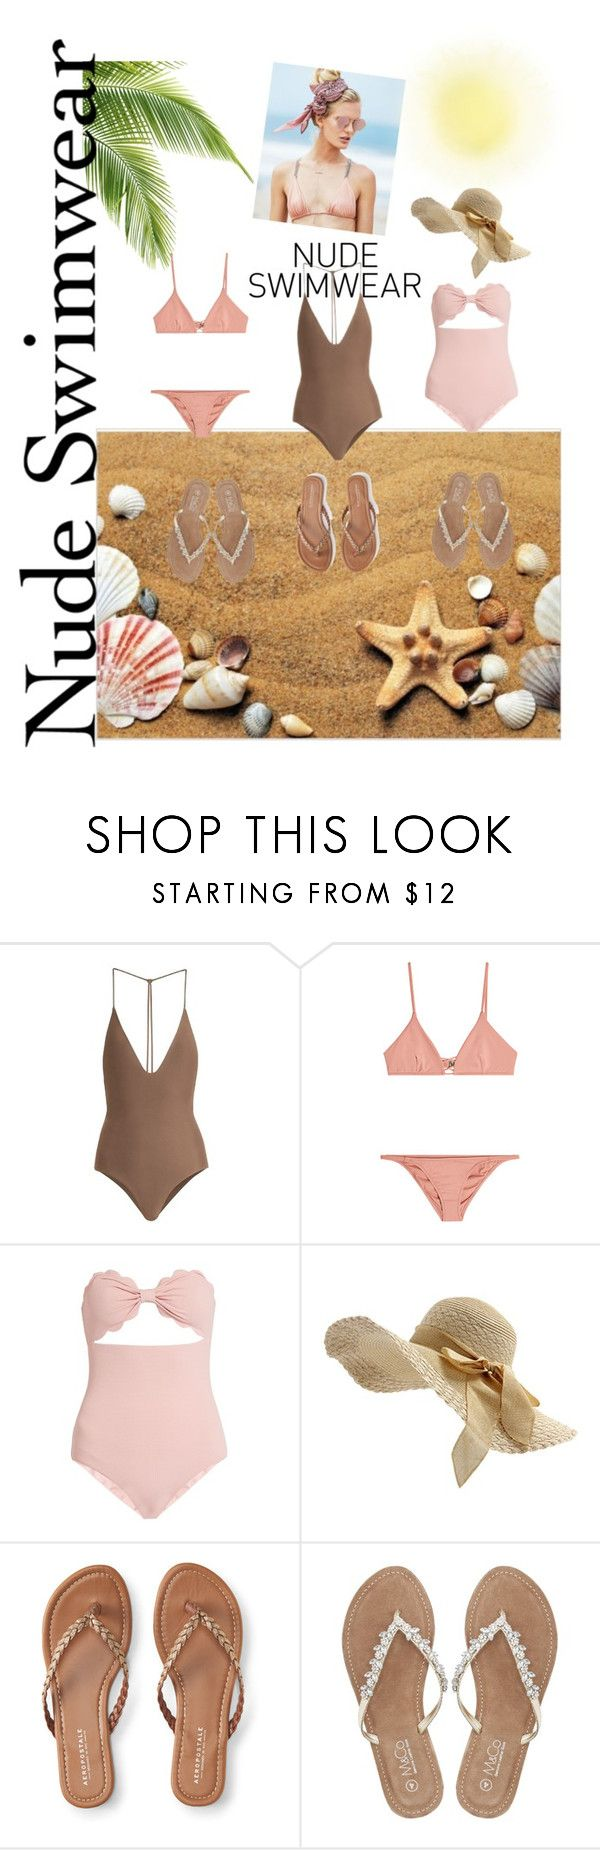 Nude Swimwear by adriana-n-stephen-dibello on Polyvore featuring Marysia Swim, Jade Swim, Melissa Odabash, Aéropostale, M&Co and Beach Riot